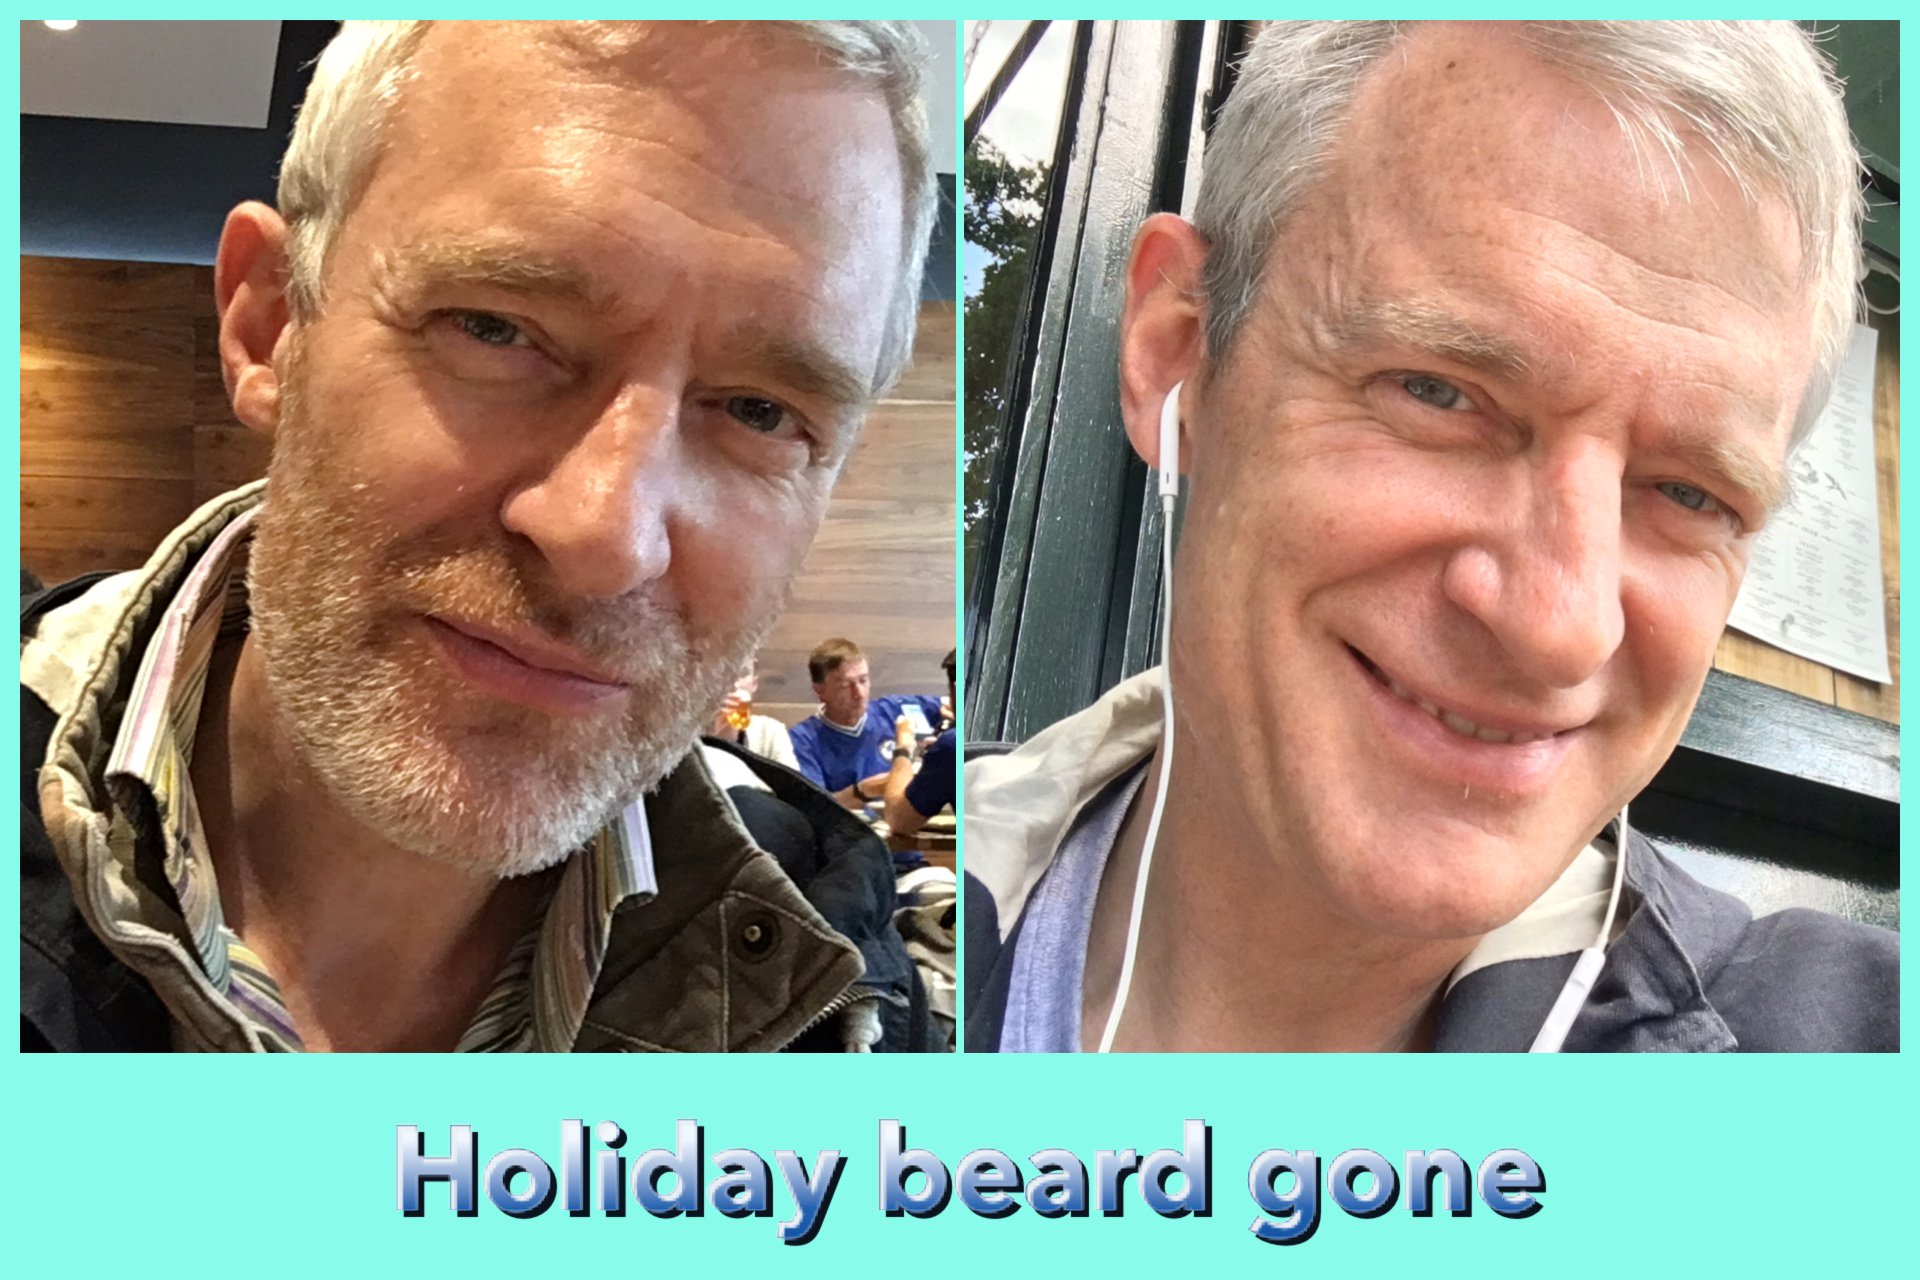 34% wasn't enough to save the summer beard — thanks for all the advice xxx https://t.co/ExP826GlJy